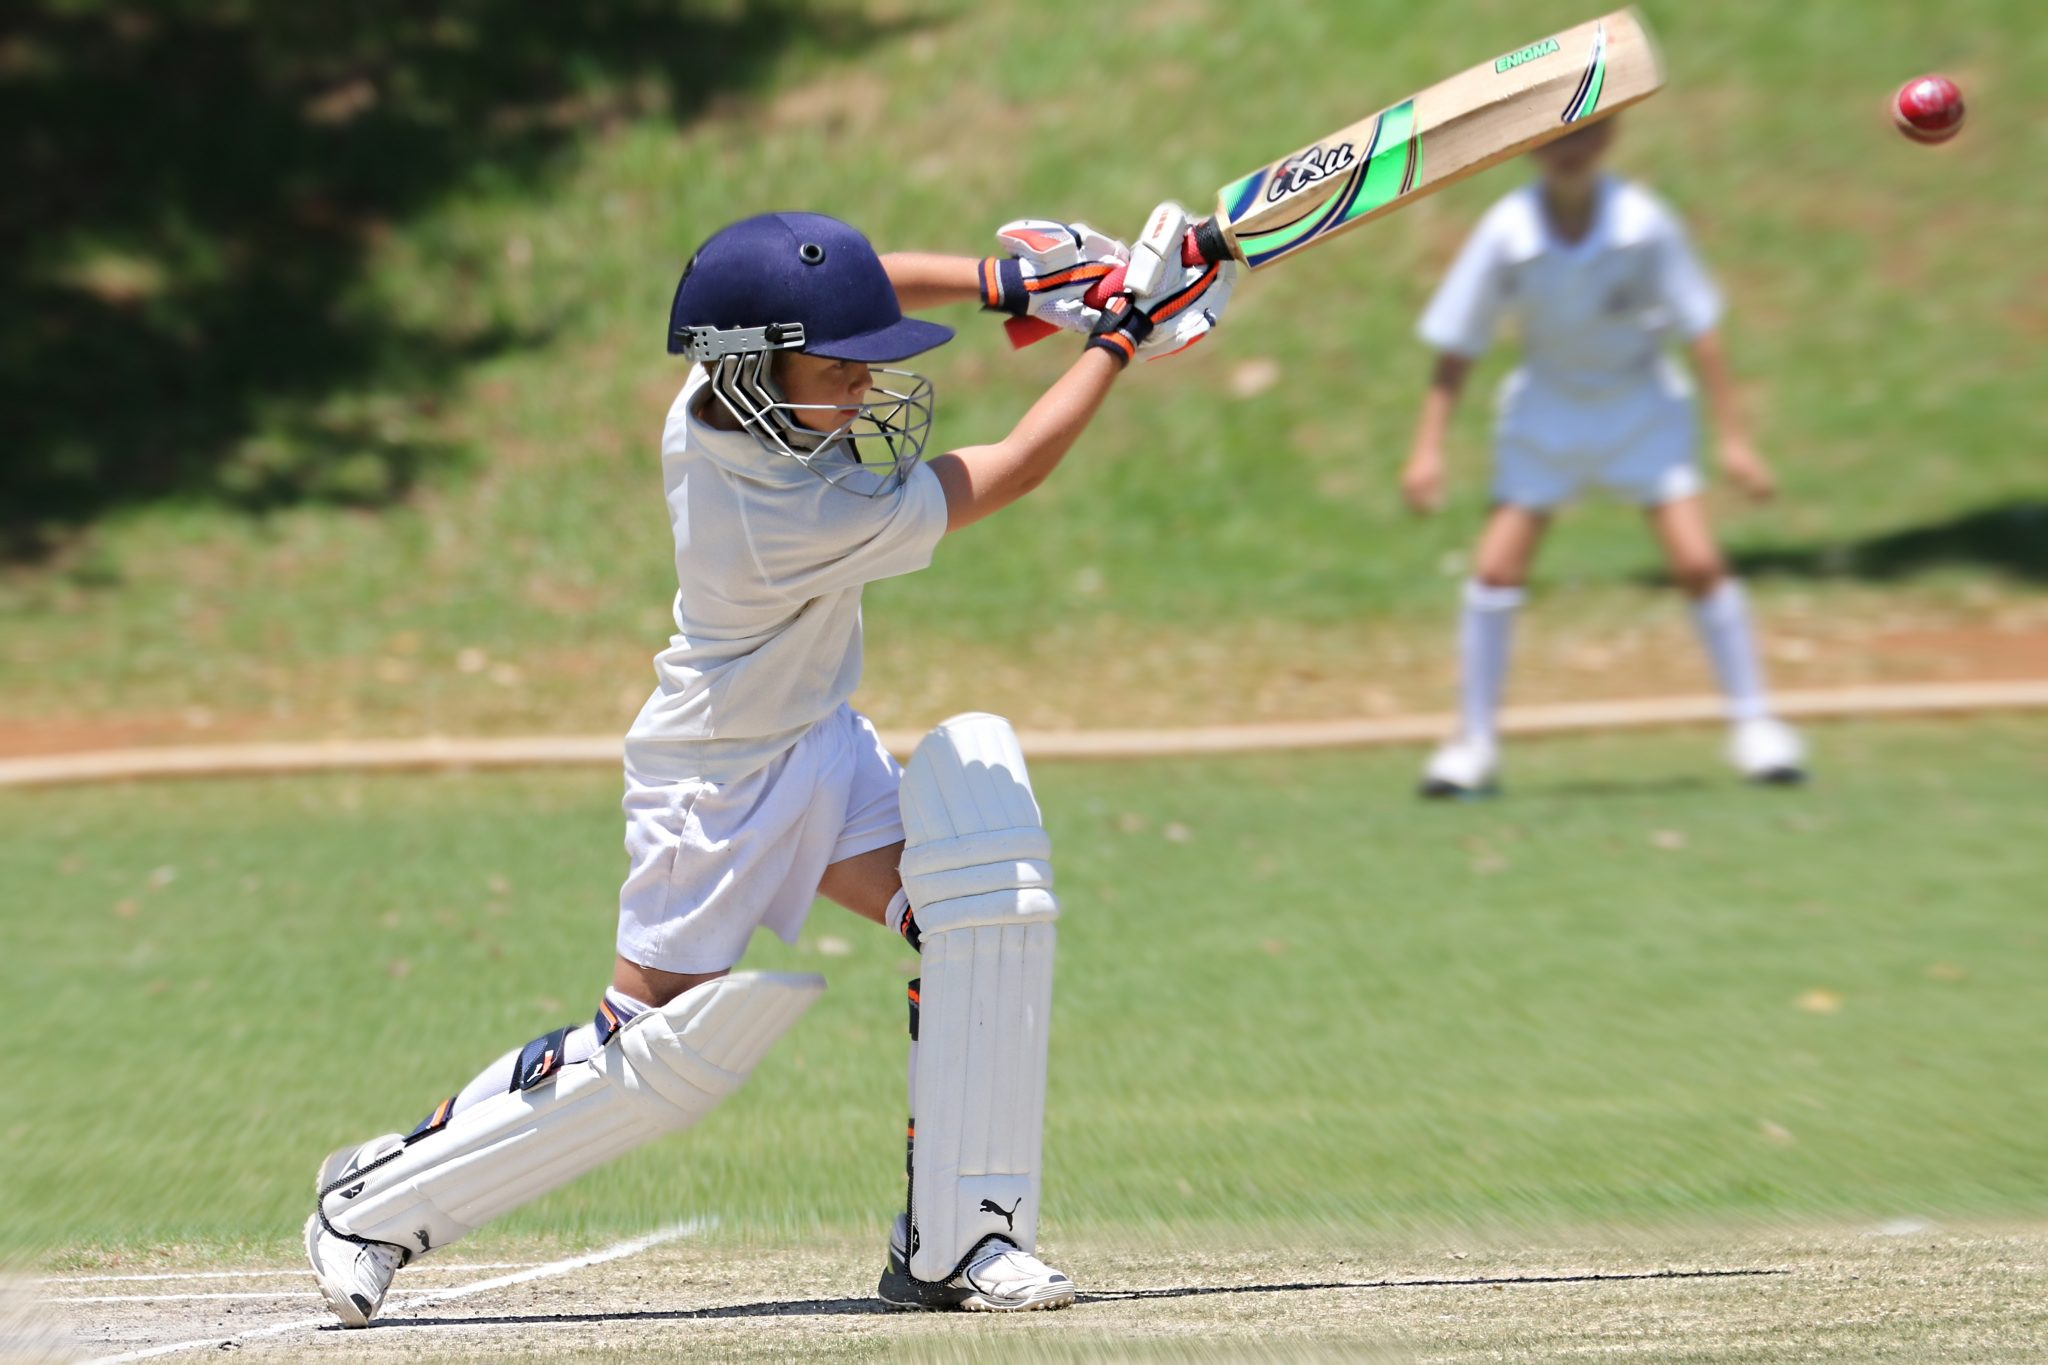 man-in-white-jersey-shirt-and-pants-holding-cricket-bat-3657154